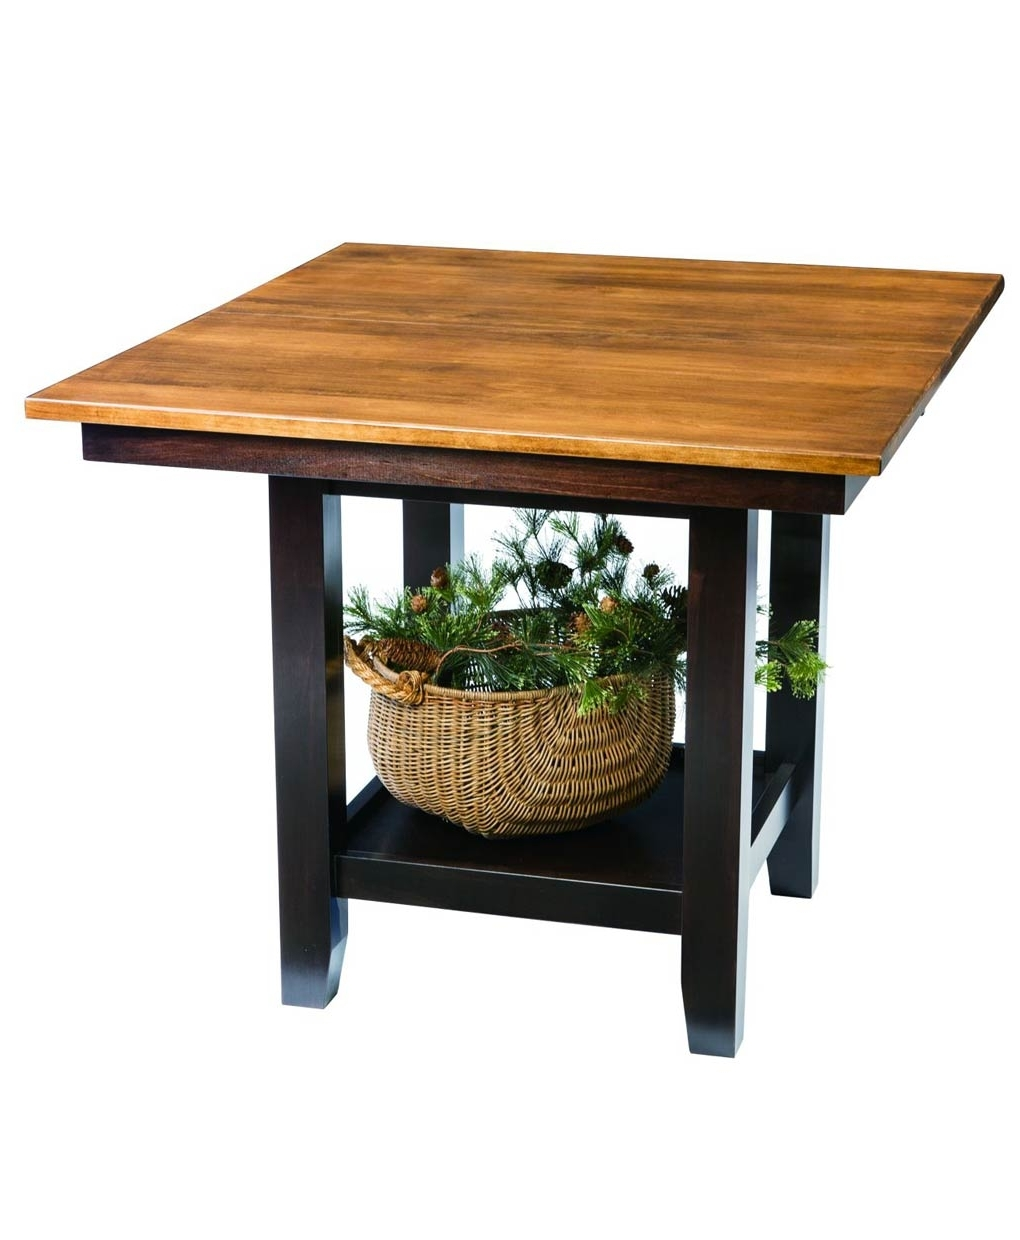 London Dining Tables For Most Up To Date London Dining Table – Amish Direct Furniture (View 22 of 25)